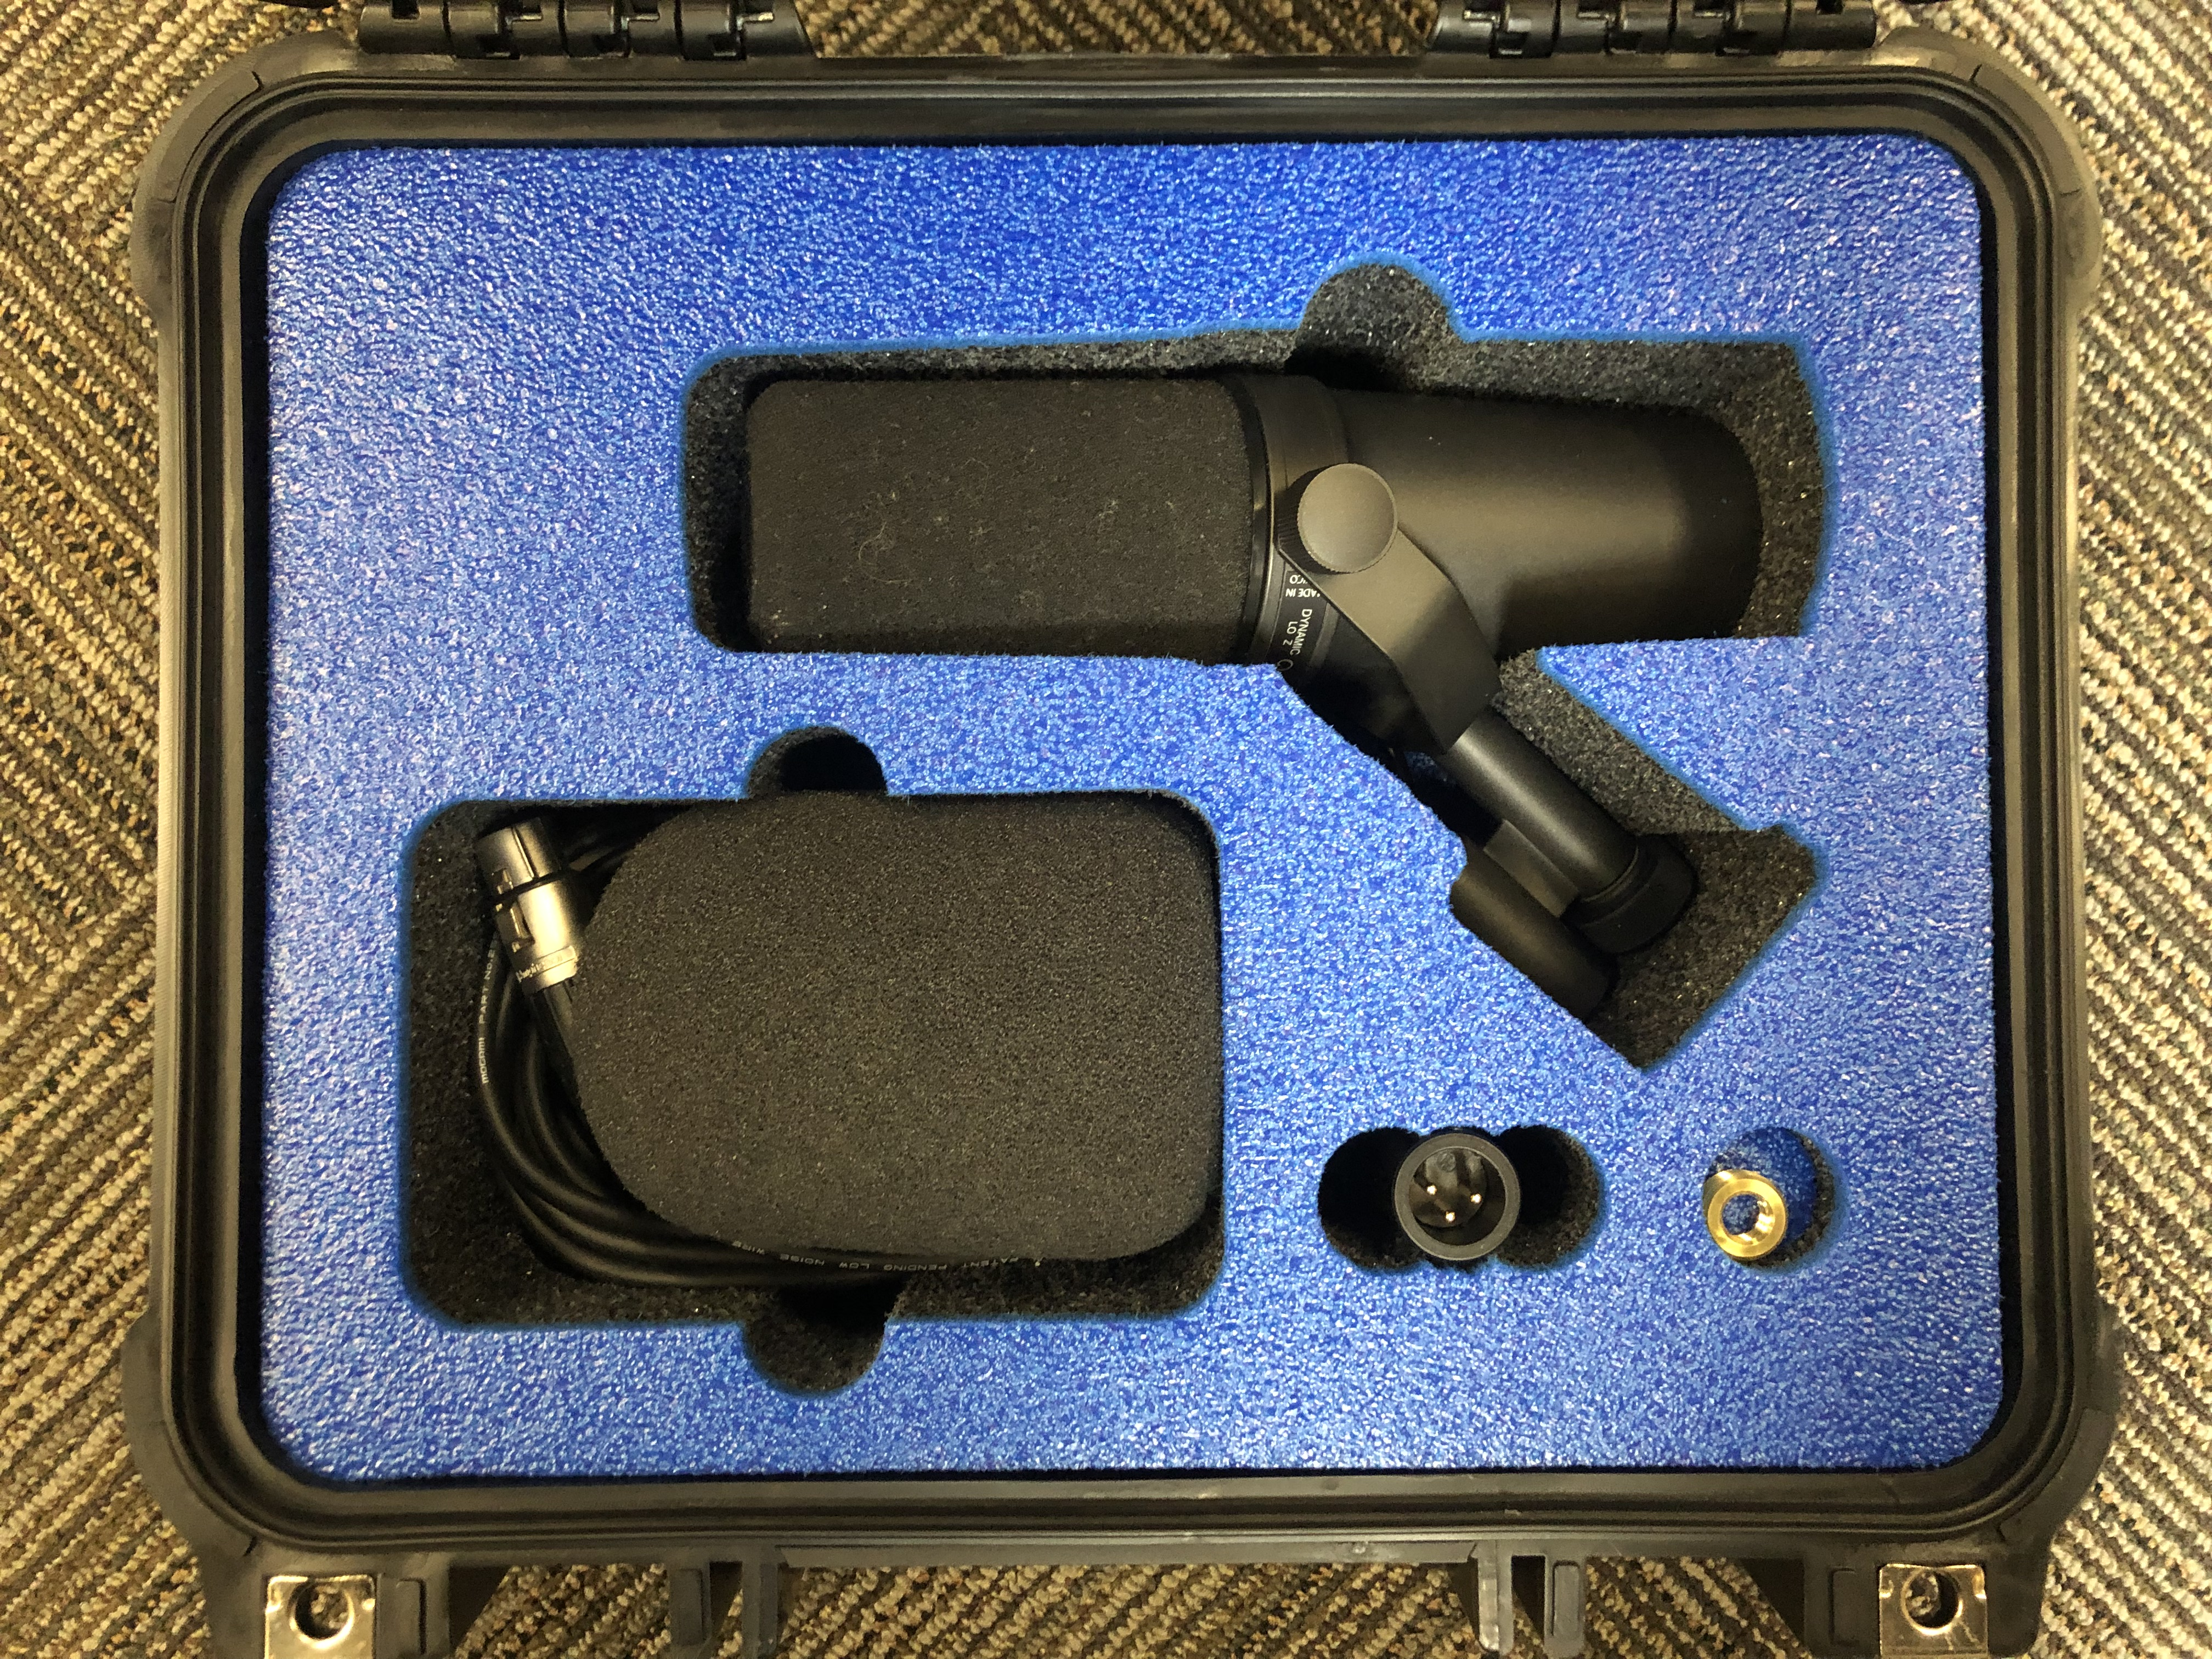 Shure SM7B in a V200 Vault by Pelican User Designed0